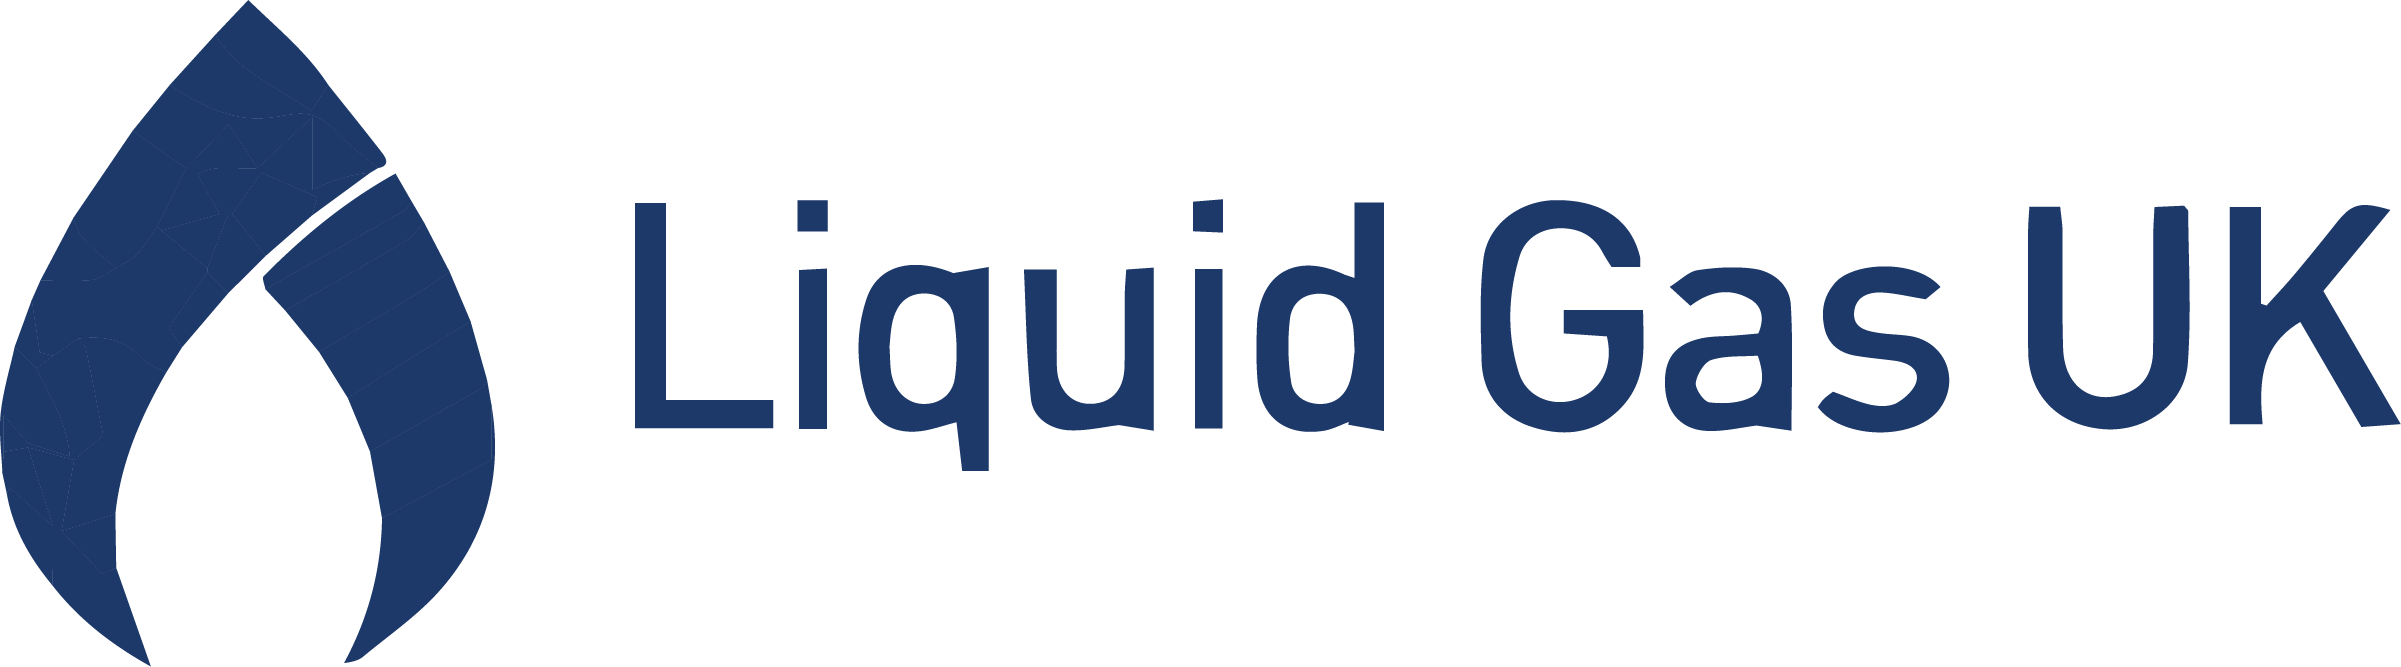 Liquid Gas UK-Logo